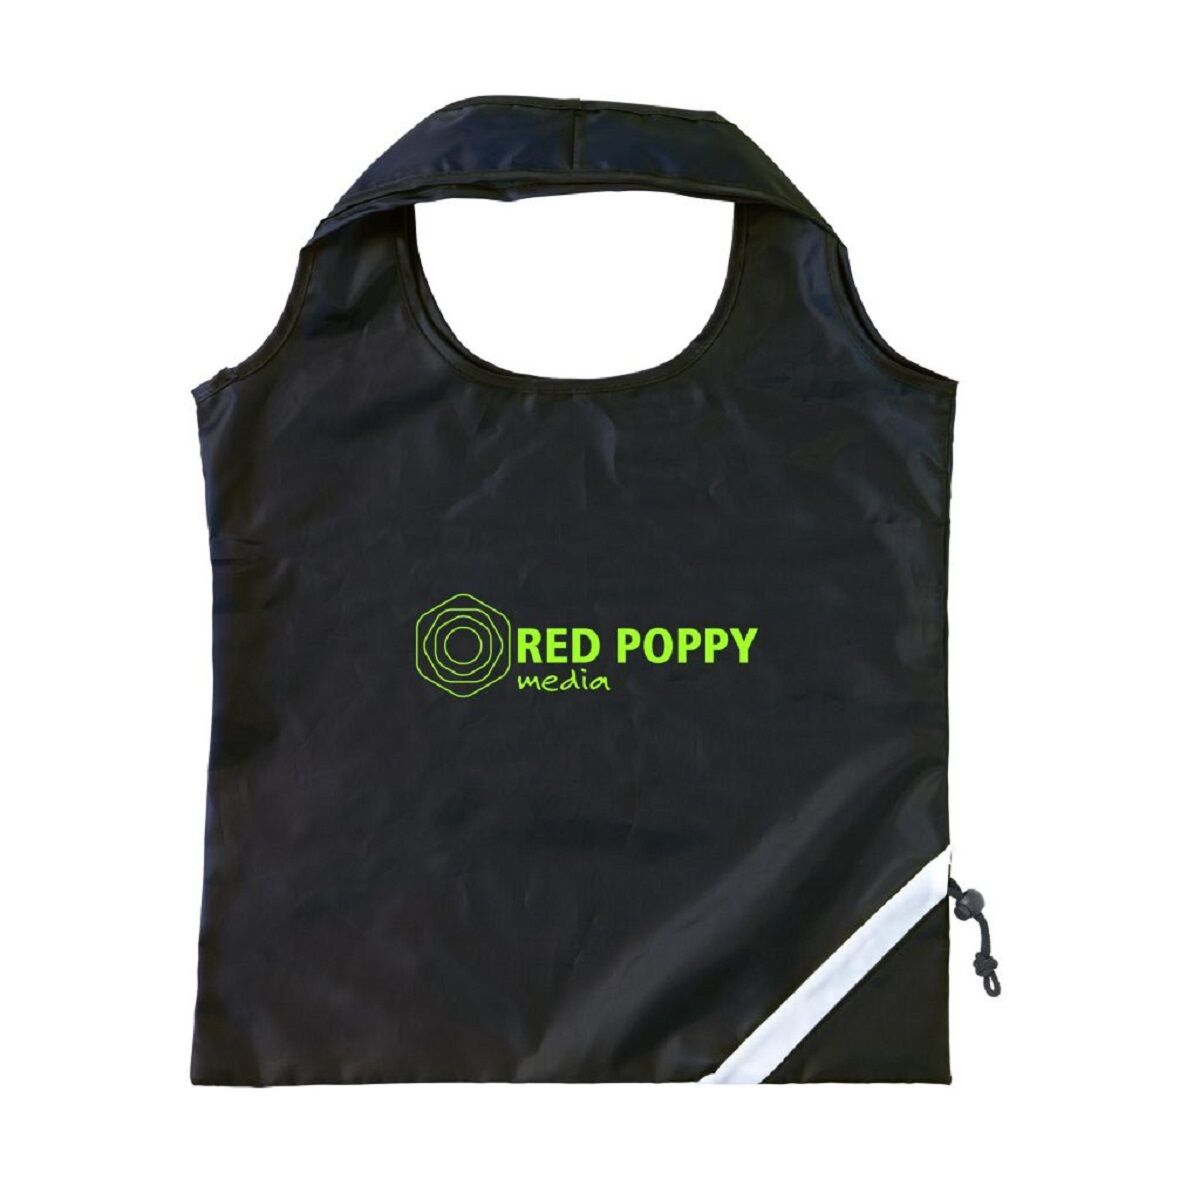 Strawberry Shaped Foldable Shoping Bag in Black